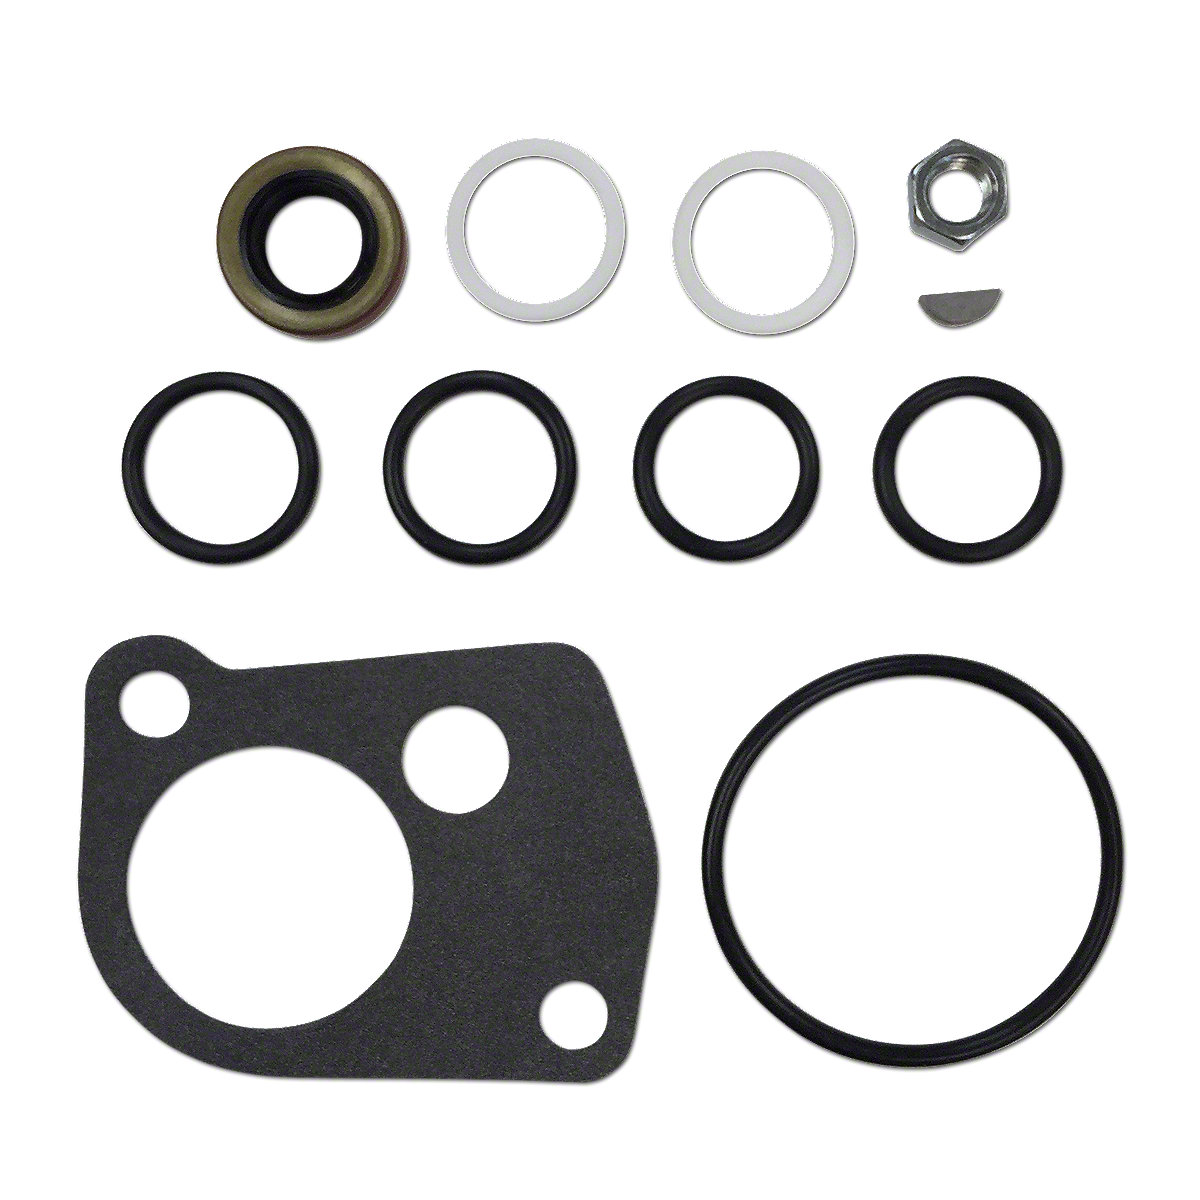 Thompson hydraulic pump gasket o ring and seal kit ihs3520 for White hydraulic motor seal kit